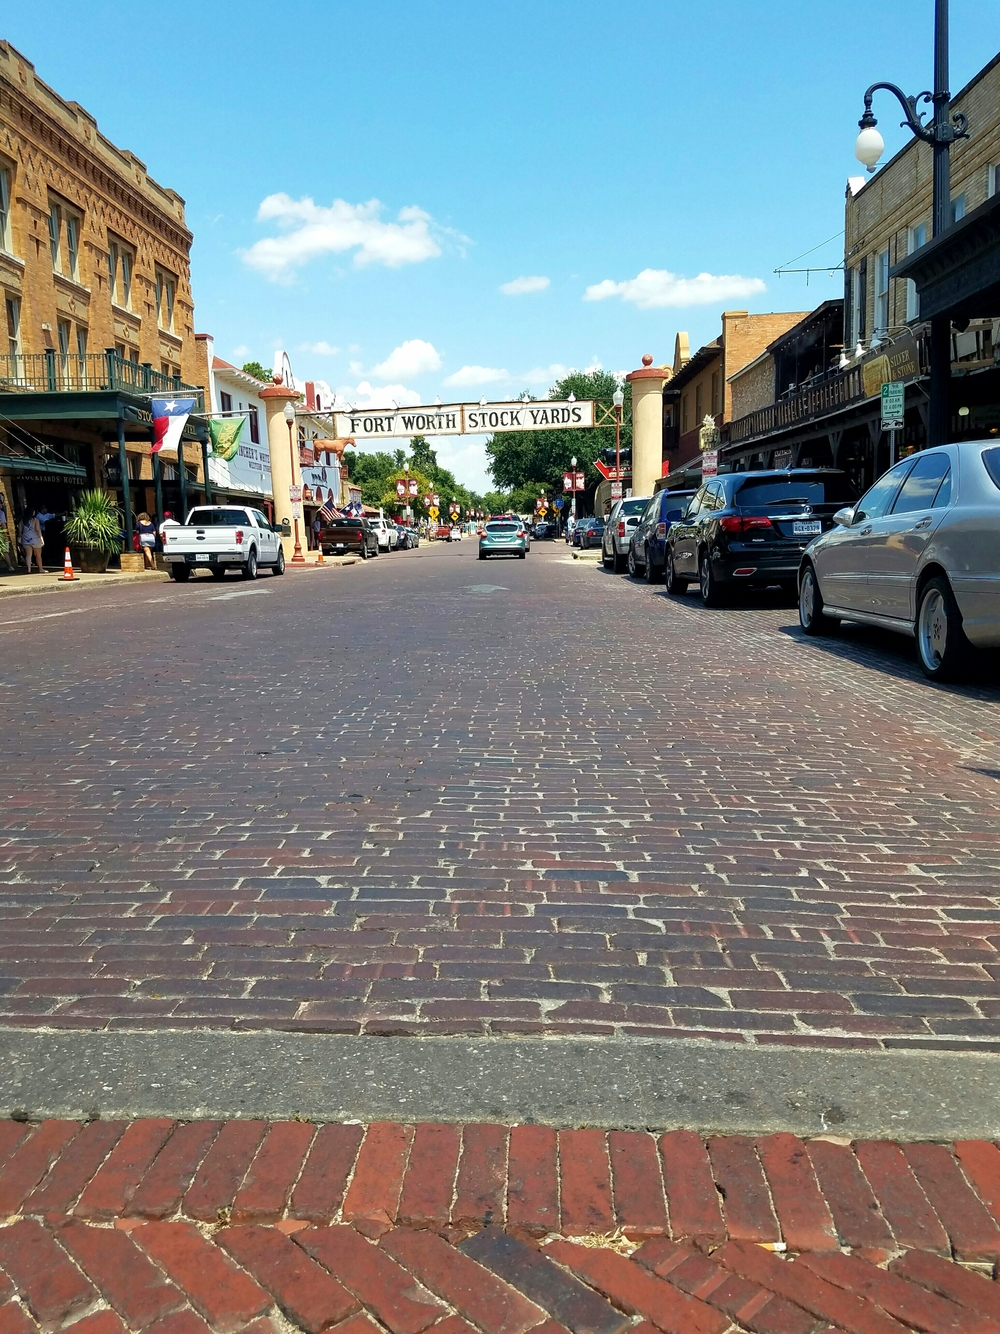 fort-worth-stockyards-texas